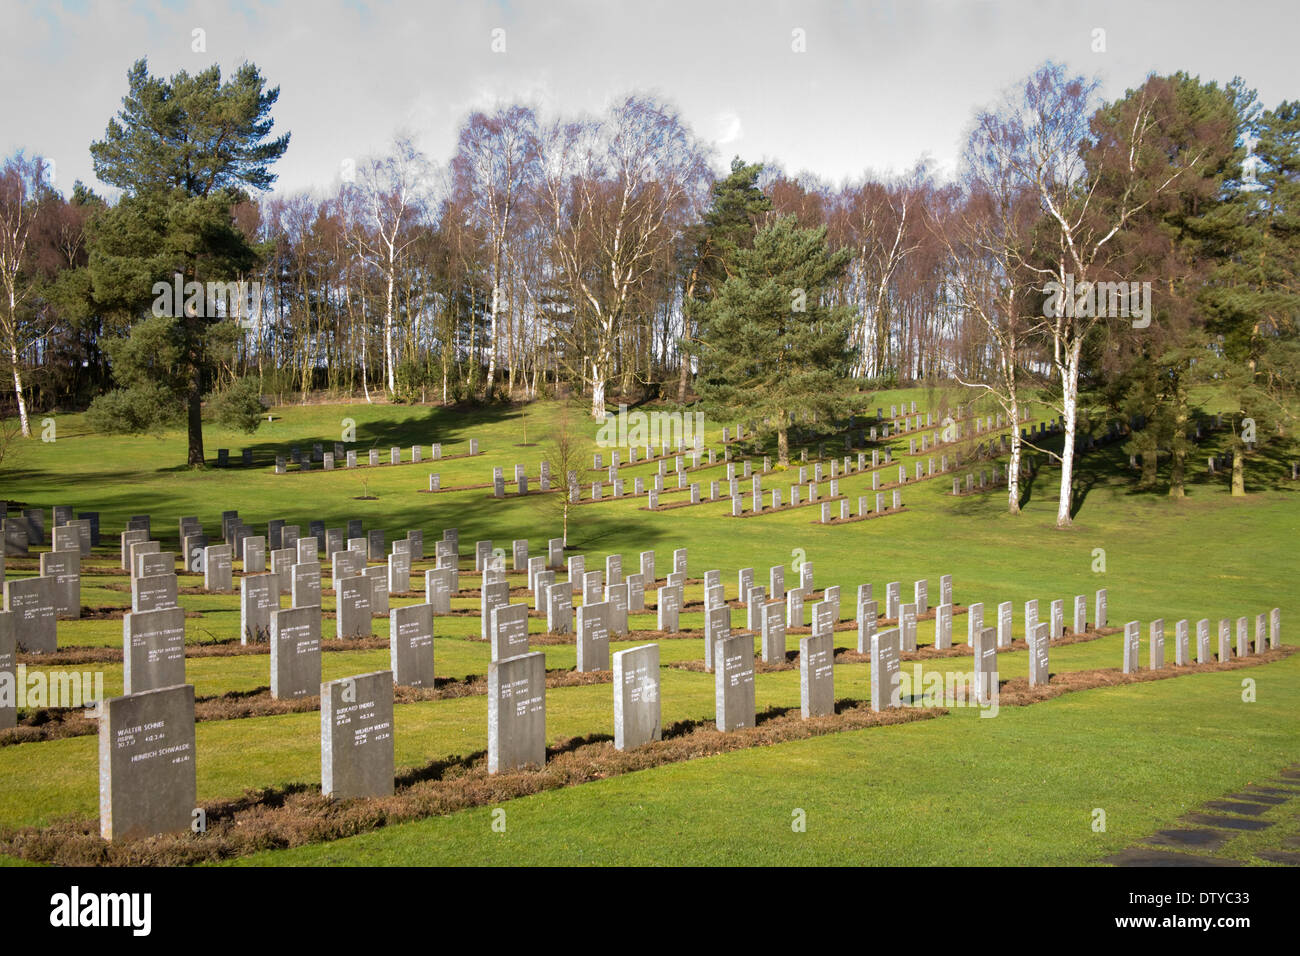 Cannock Chase Staffordshire England UK German war cemetery rows of headstones of Germans who died on British soil in World War 1 - Stock Image